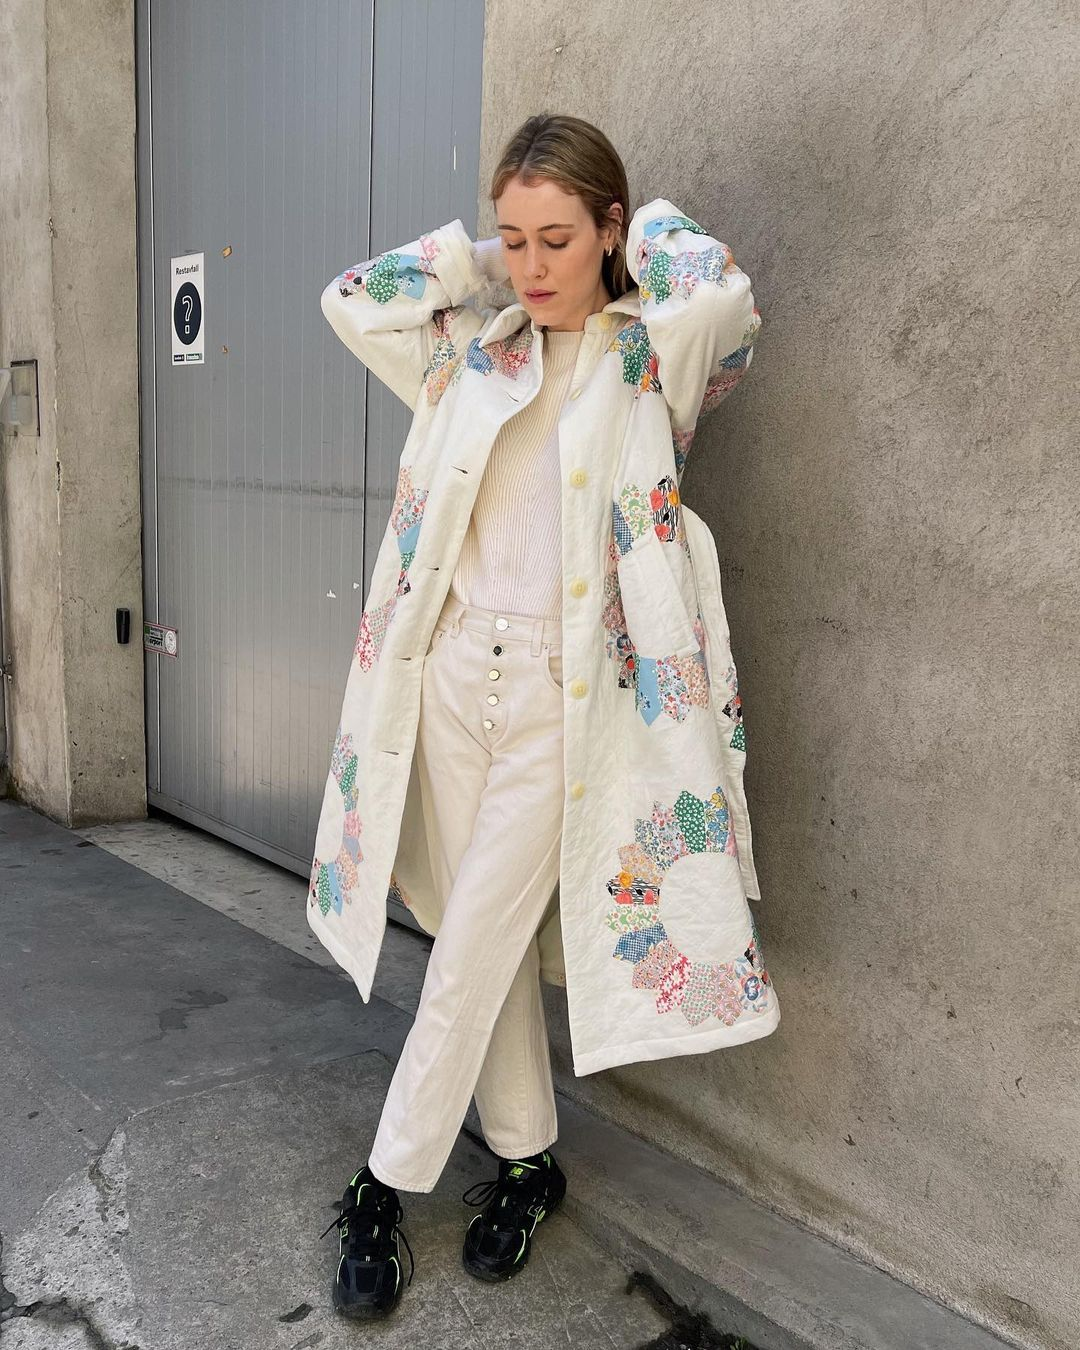 annabel-rosendahl-sea-ny-linden-belted-quilted-patchwork-cotton-coat-instagram